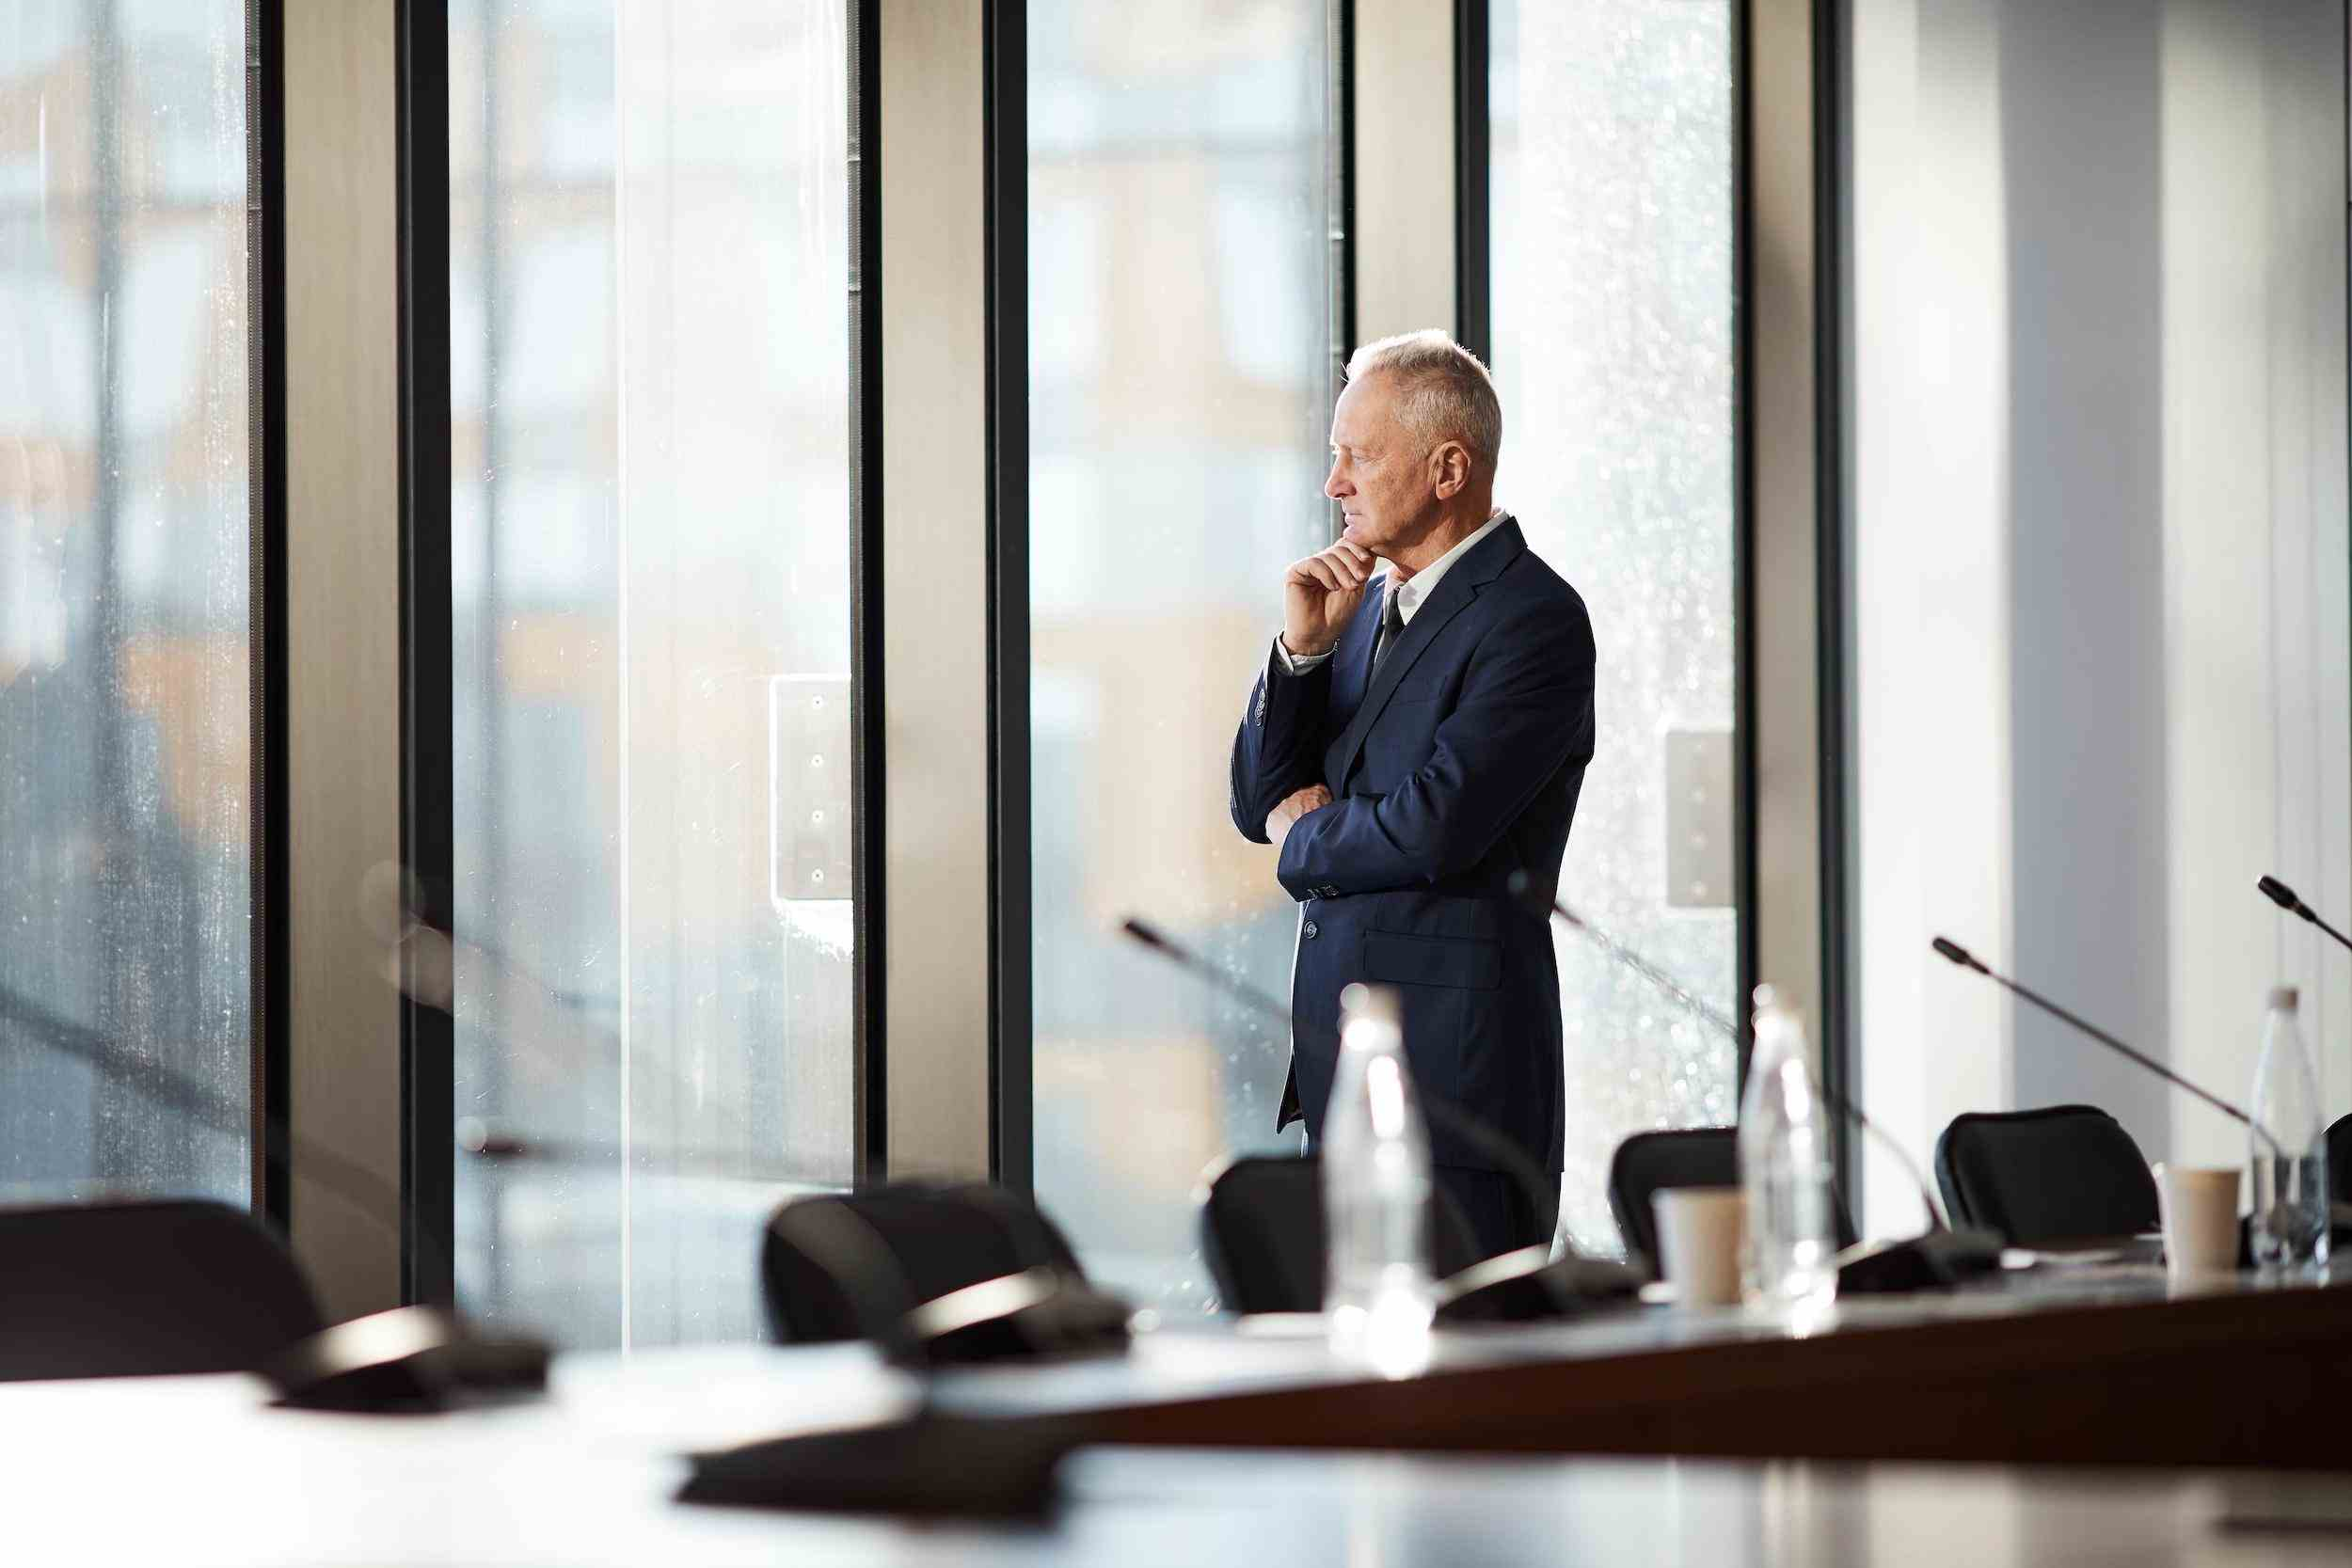 Senior caucasian man looking out office window thinking about common litigation risks